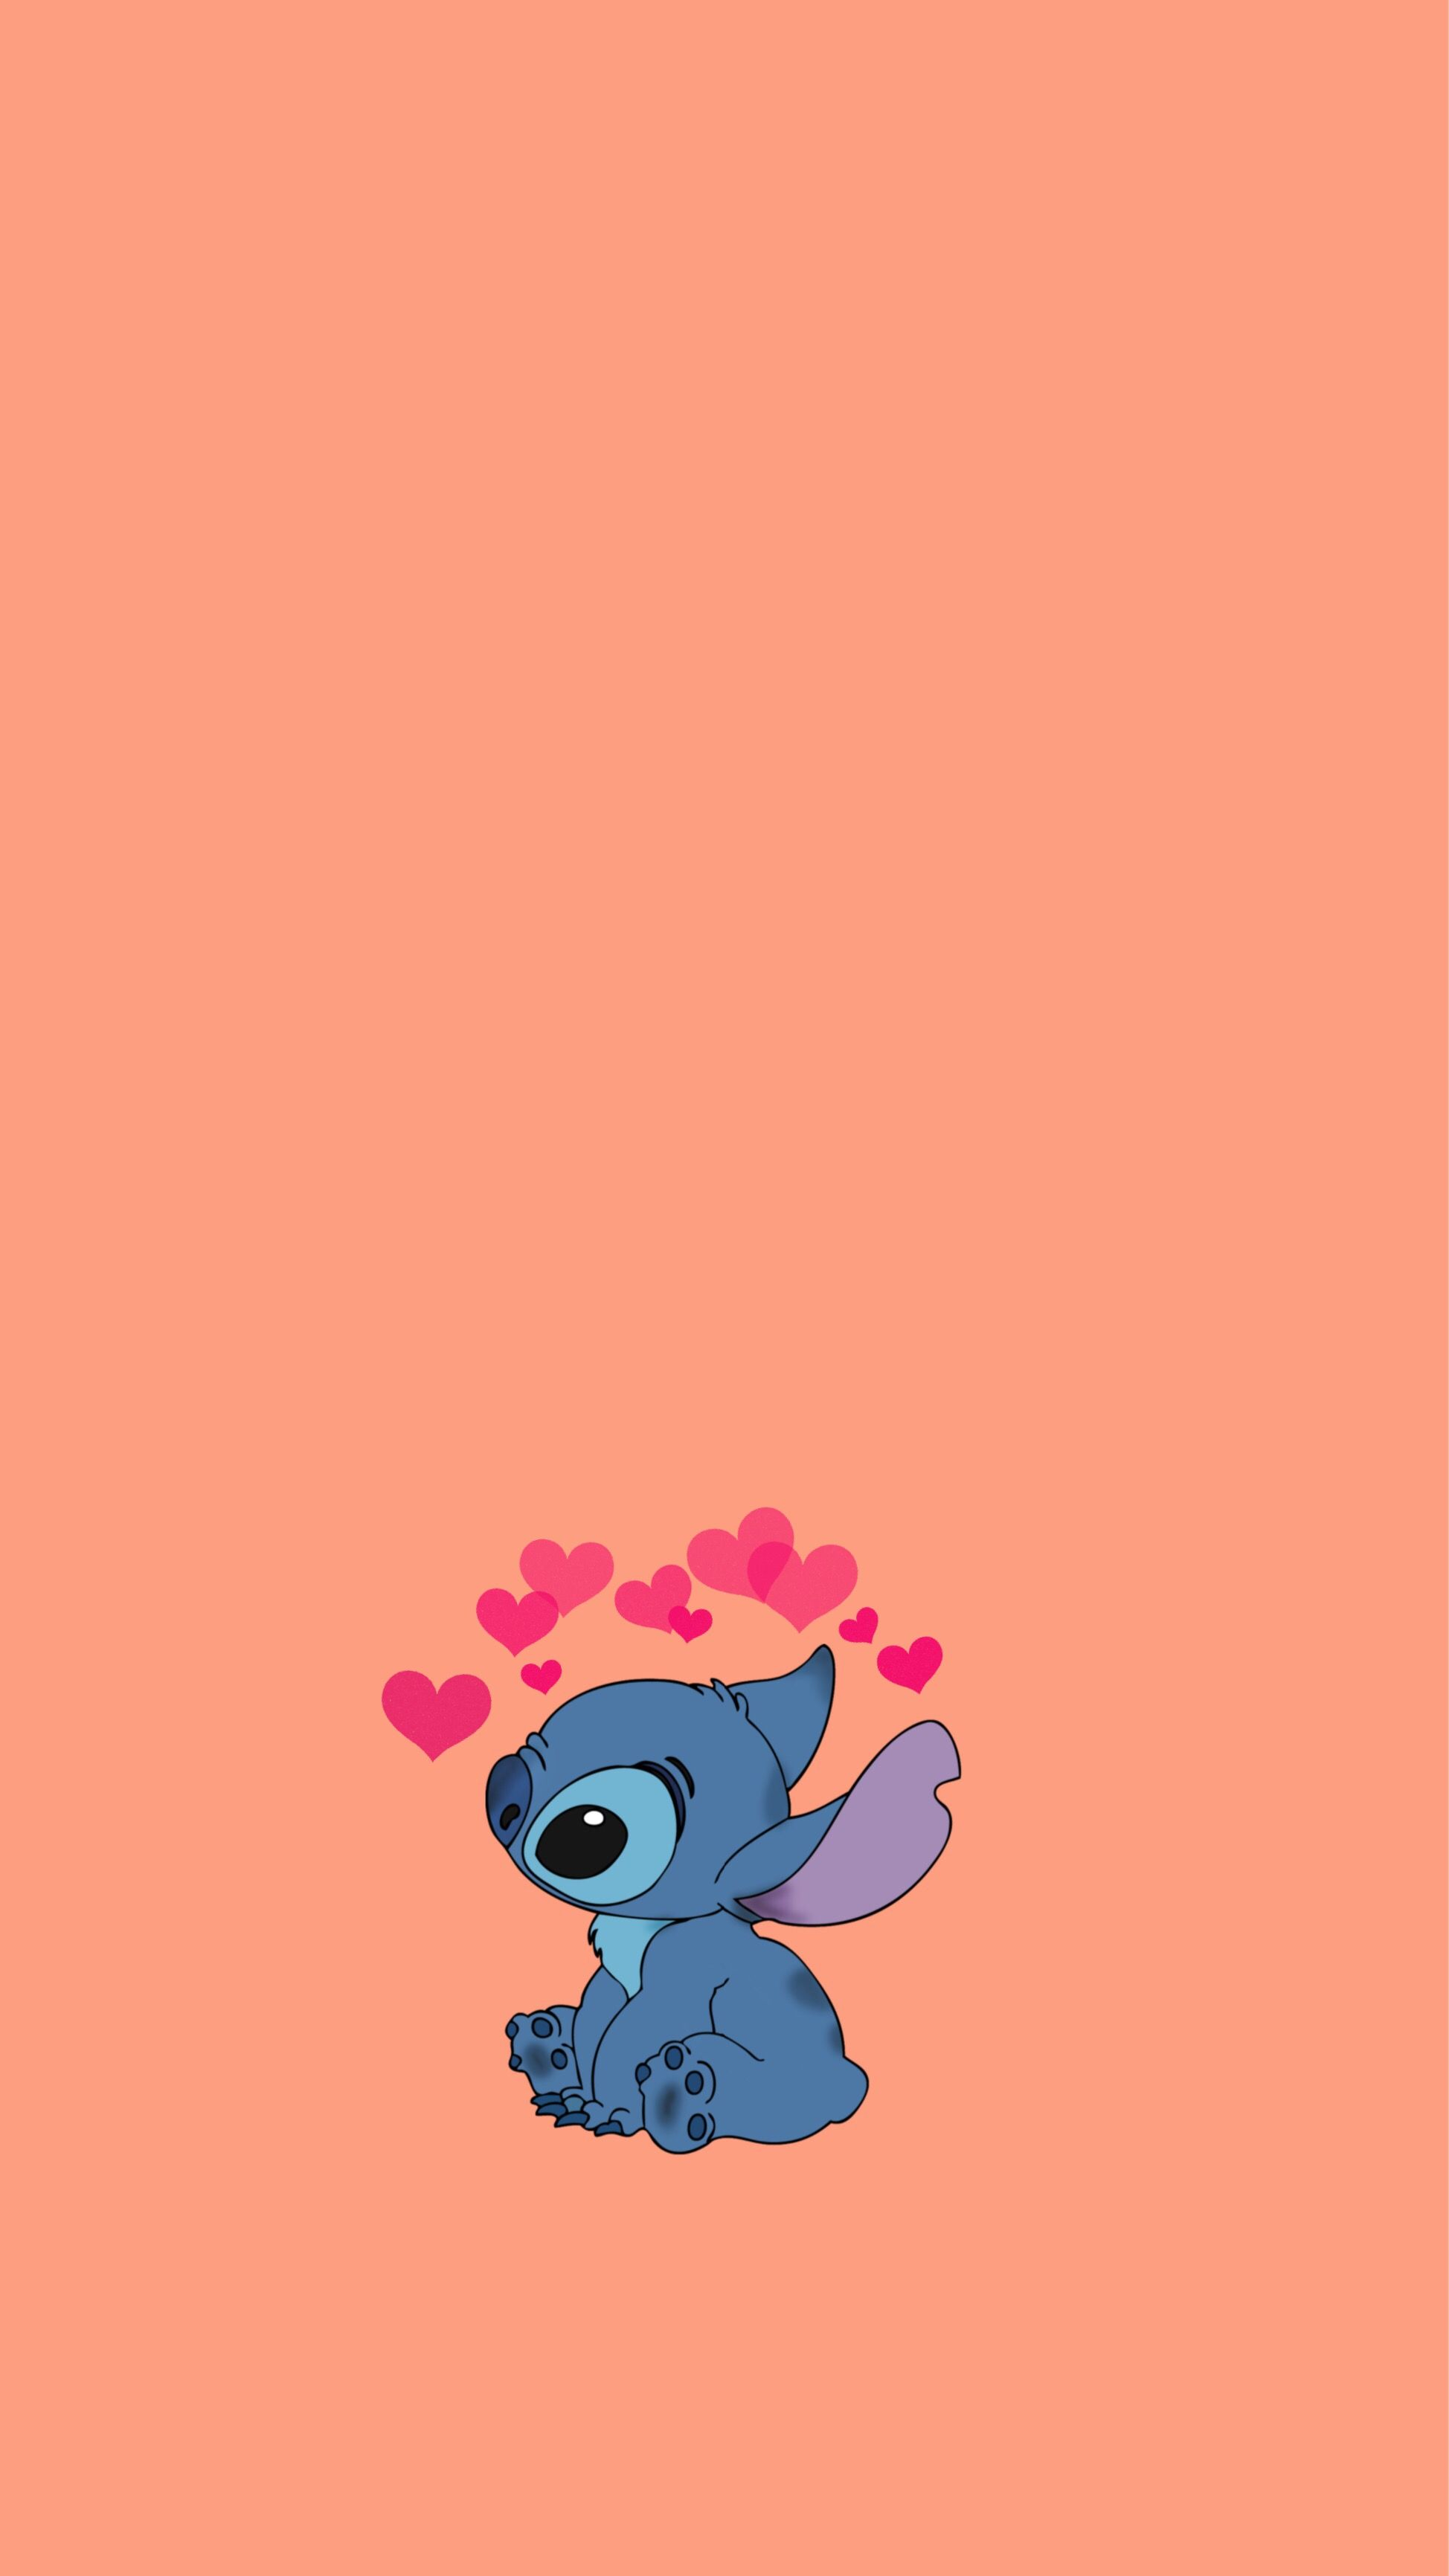 Cute Liloystich Stitch Backround Heartcrown